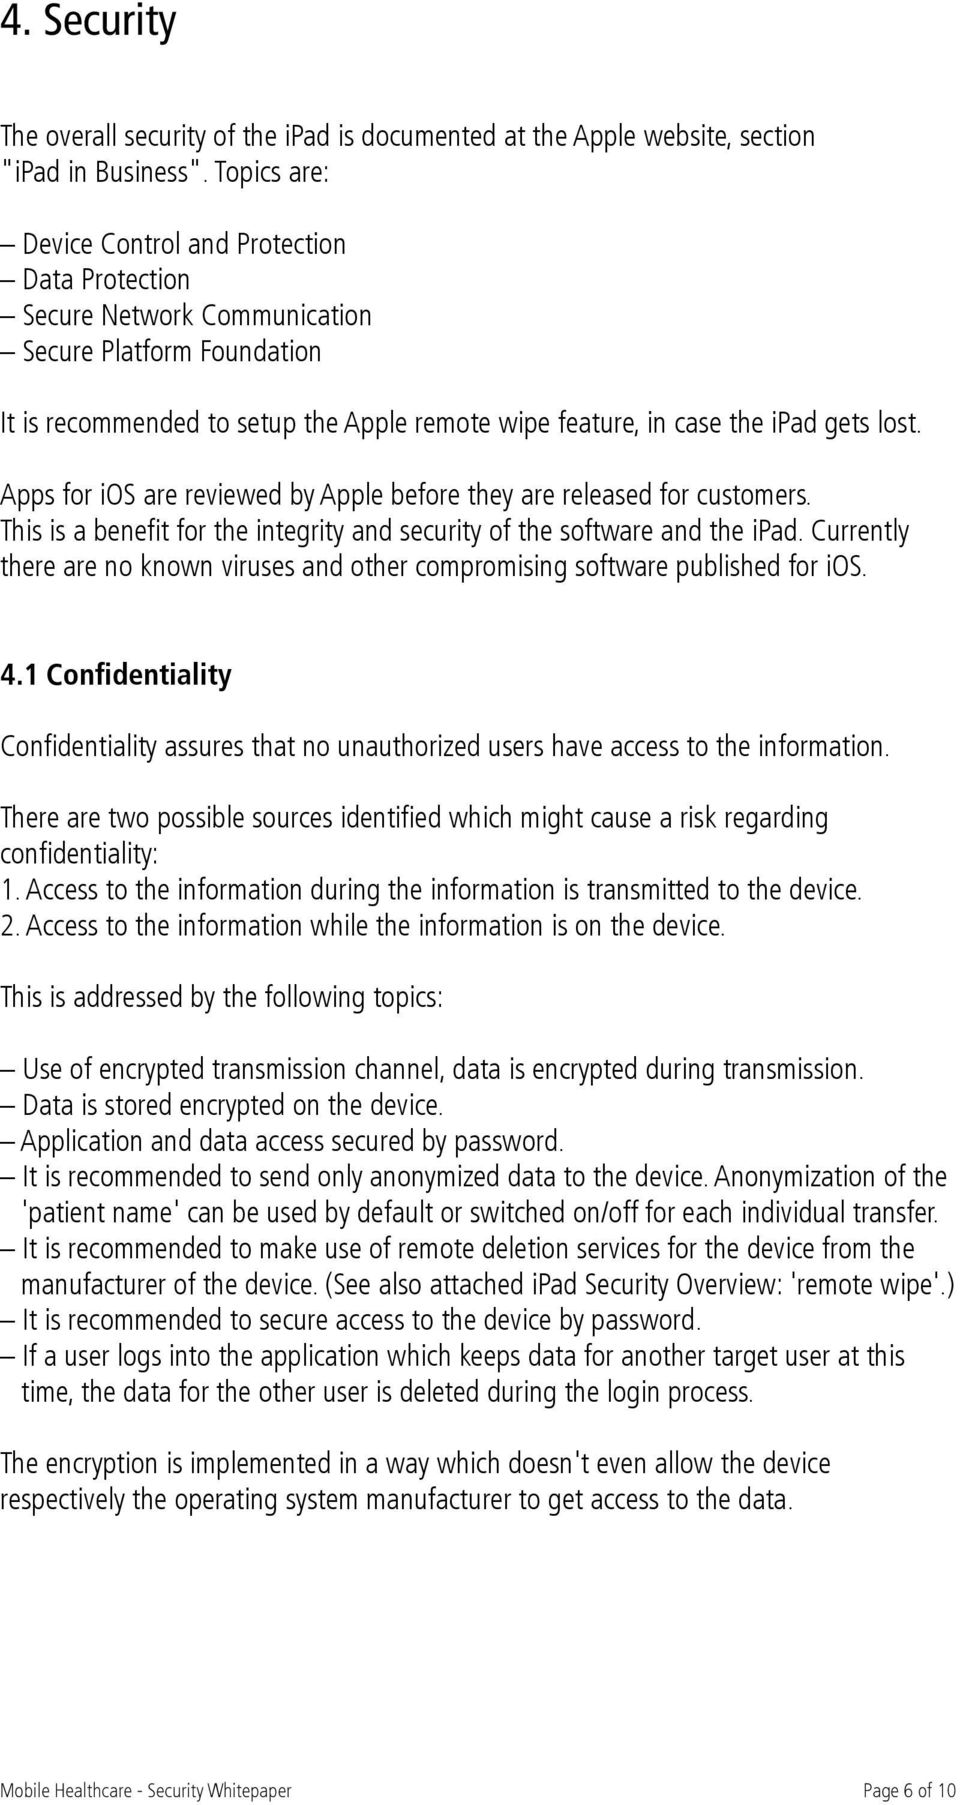 Apps for ios are reviewed by Apple before they are released for customers. This is a benefit for the integrity and security of the software and the ipad.